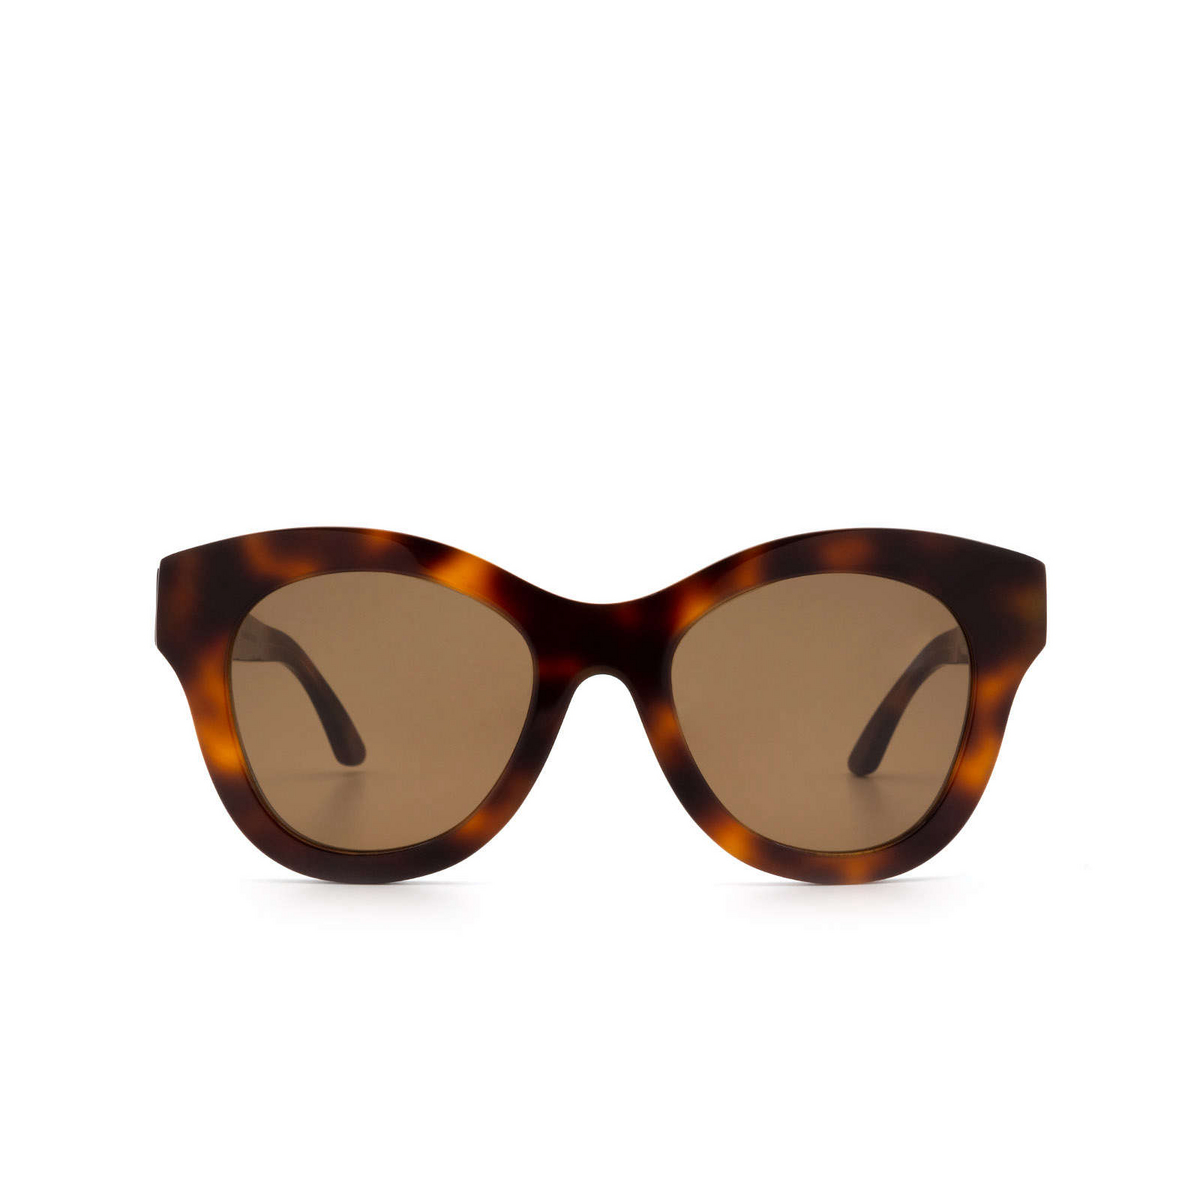 Huma® Butterfly Sunglasses: Cami color Havana 00 - front view.